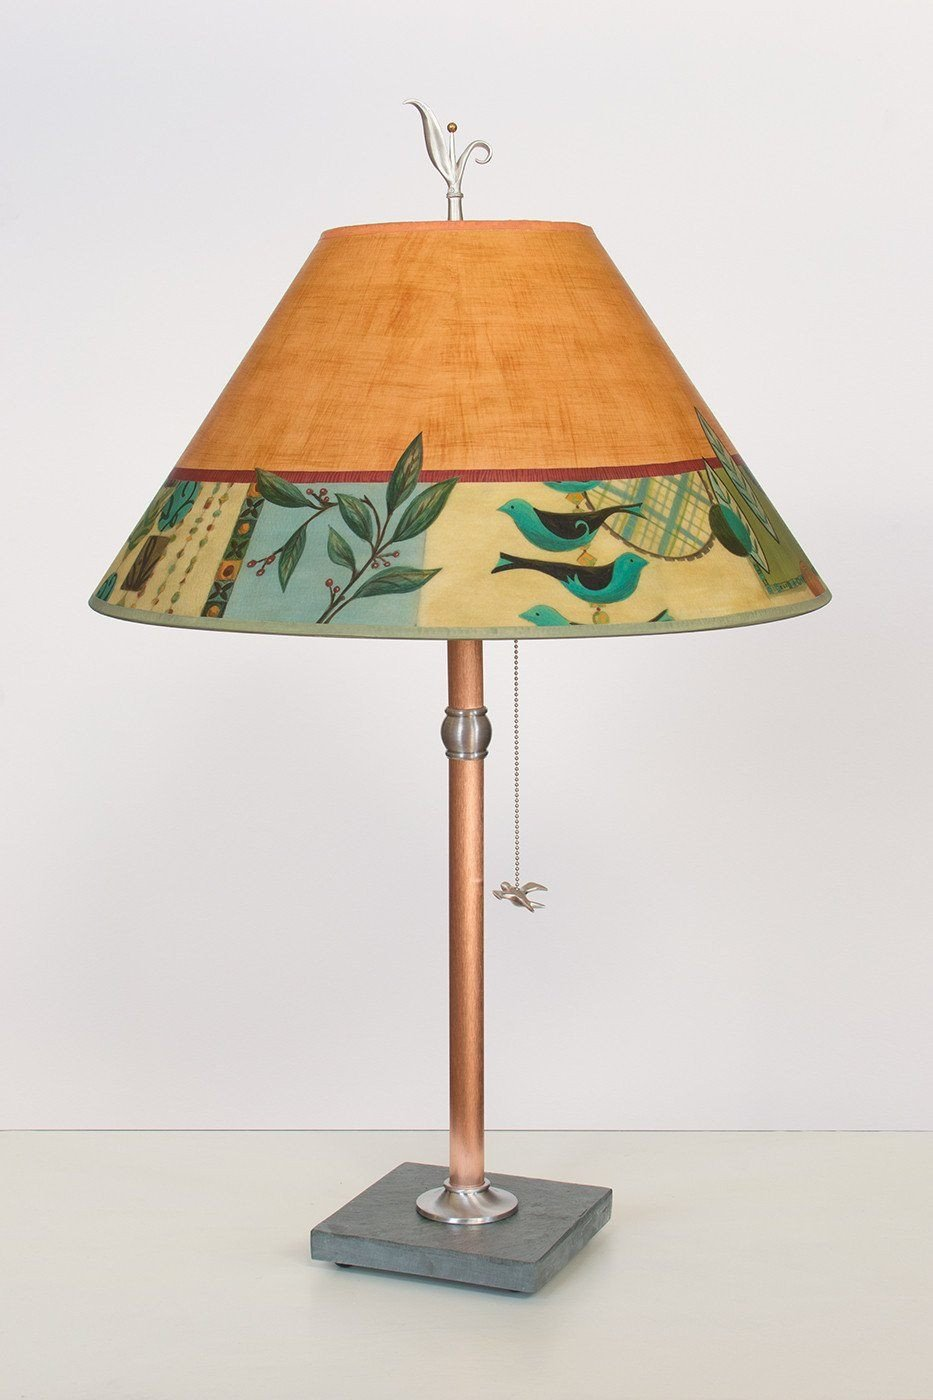 Copper Table Lamp on Vermont Slate with Large Conical Shade in New Capri Spice